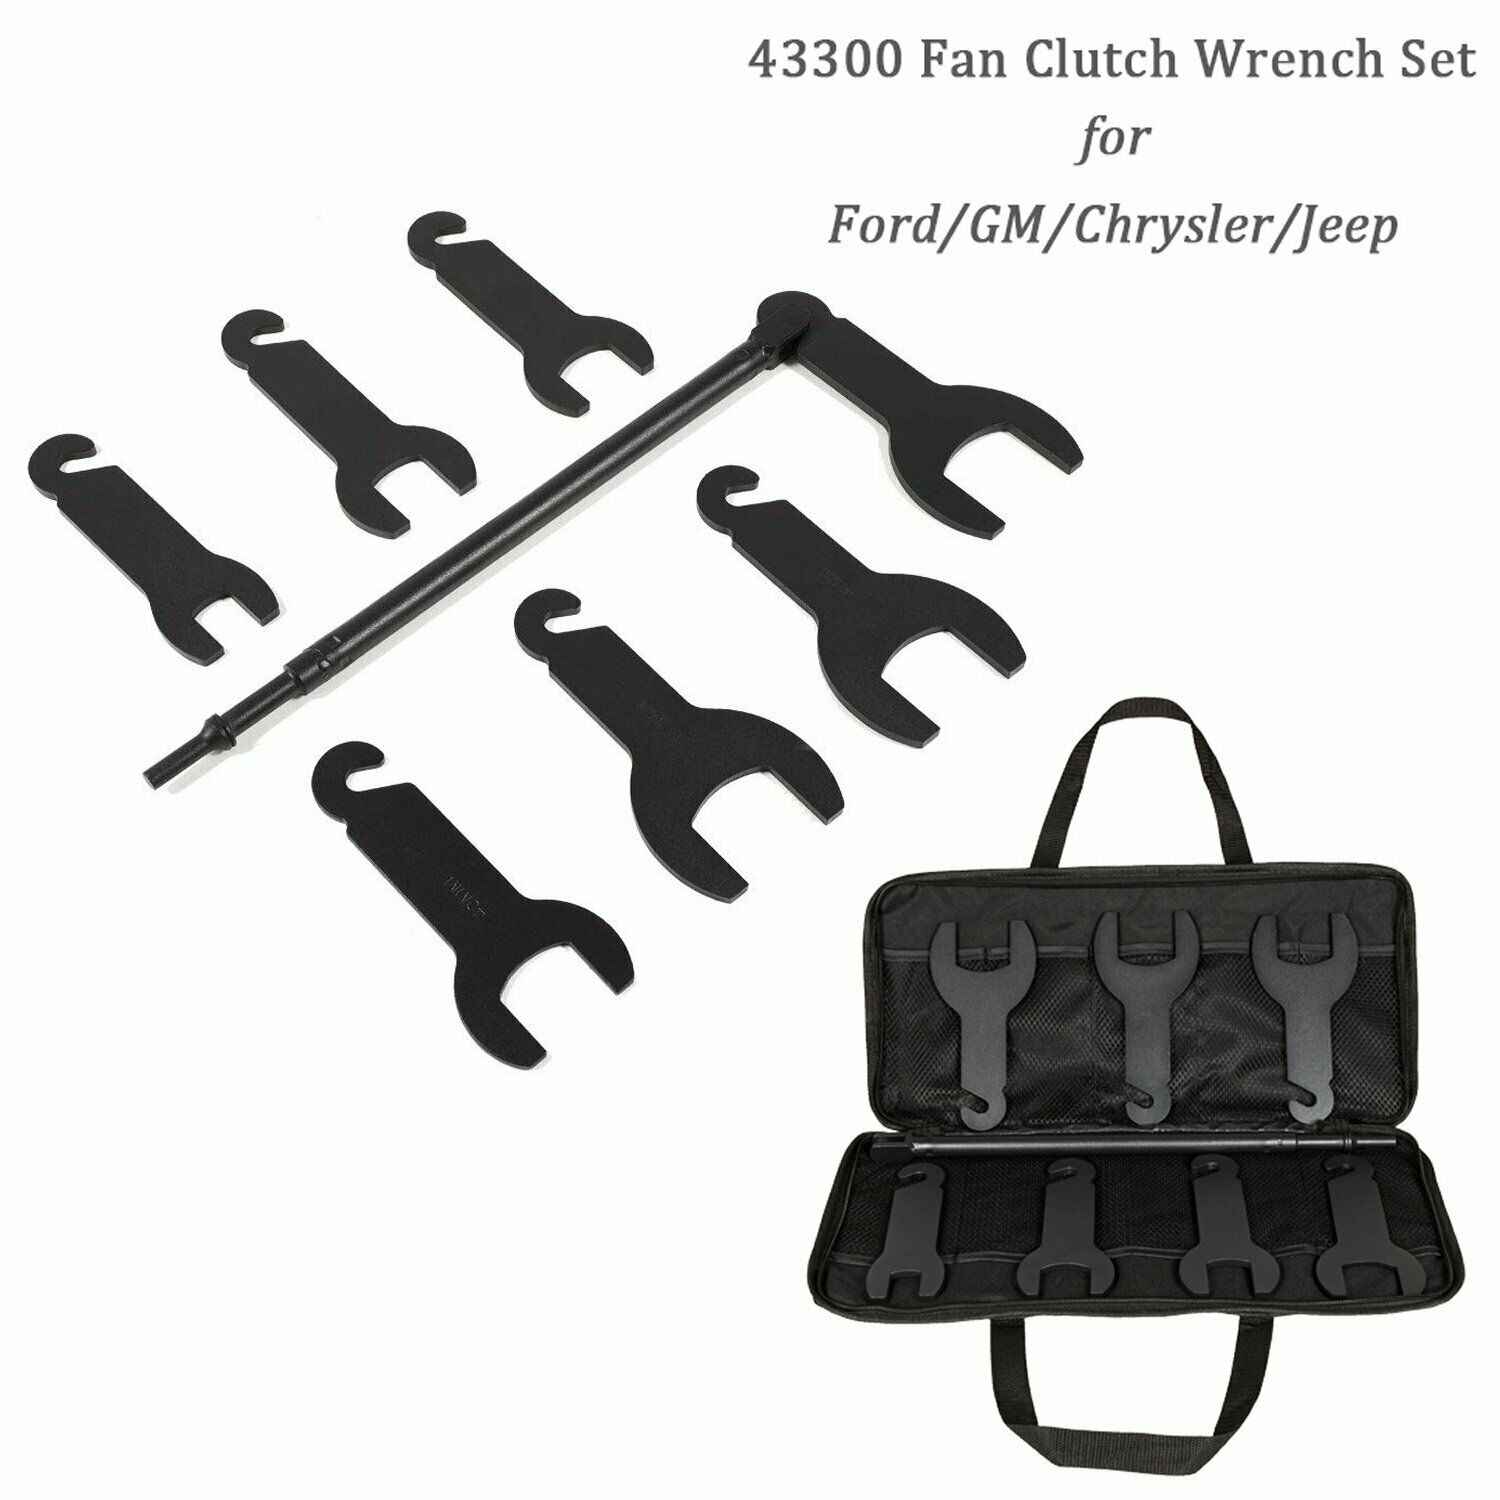 For Ford//GM//Chrysler//Jeep 43300 Pneumatic Fan Clutch Wrench Set Removal Tool Kit